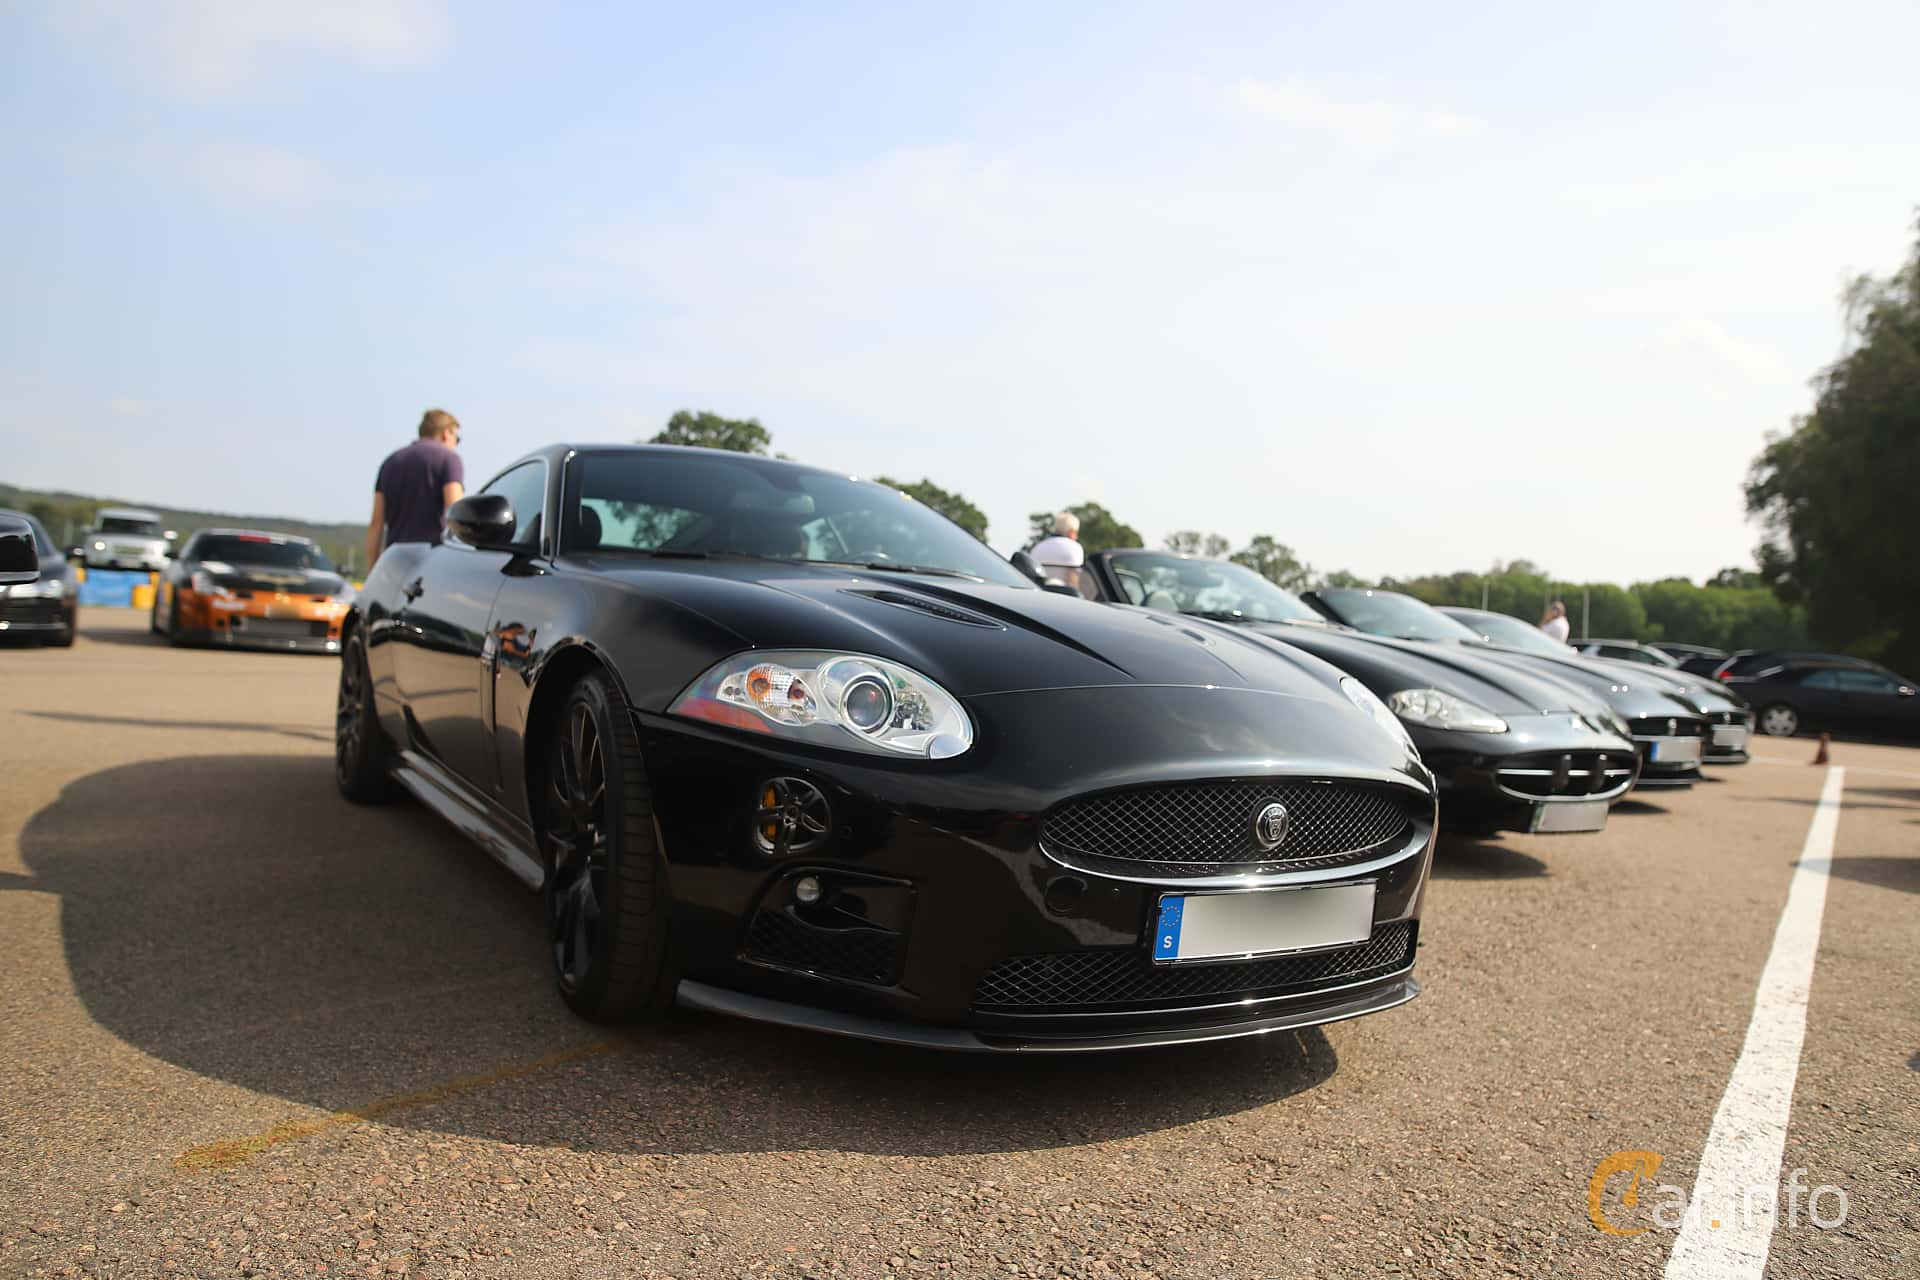 Jaguar XKR-S 4.2 V8 Automatic, 416hp, 2009 at Autoropa Racing day Knutstorp 2019